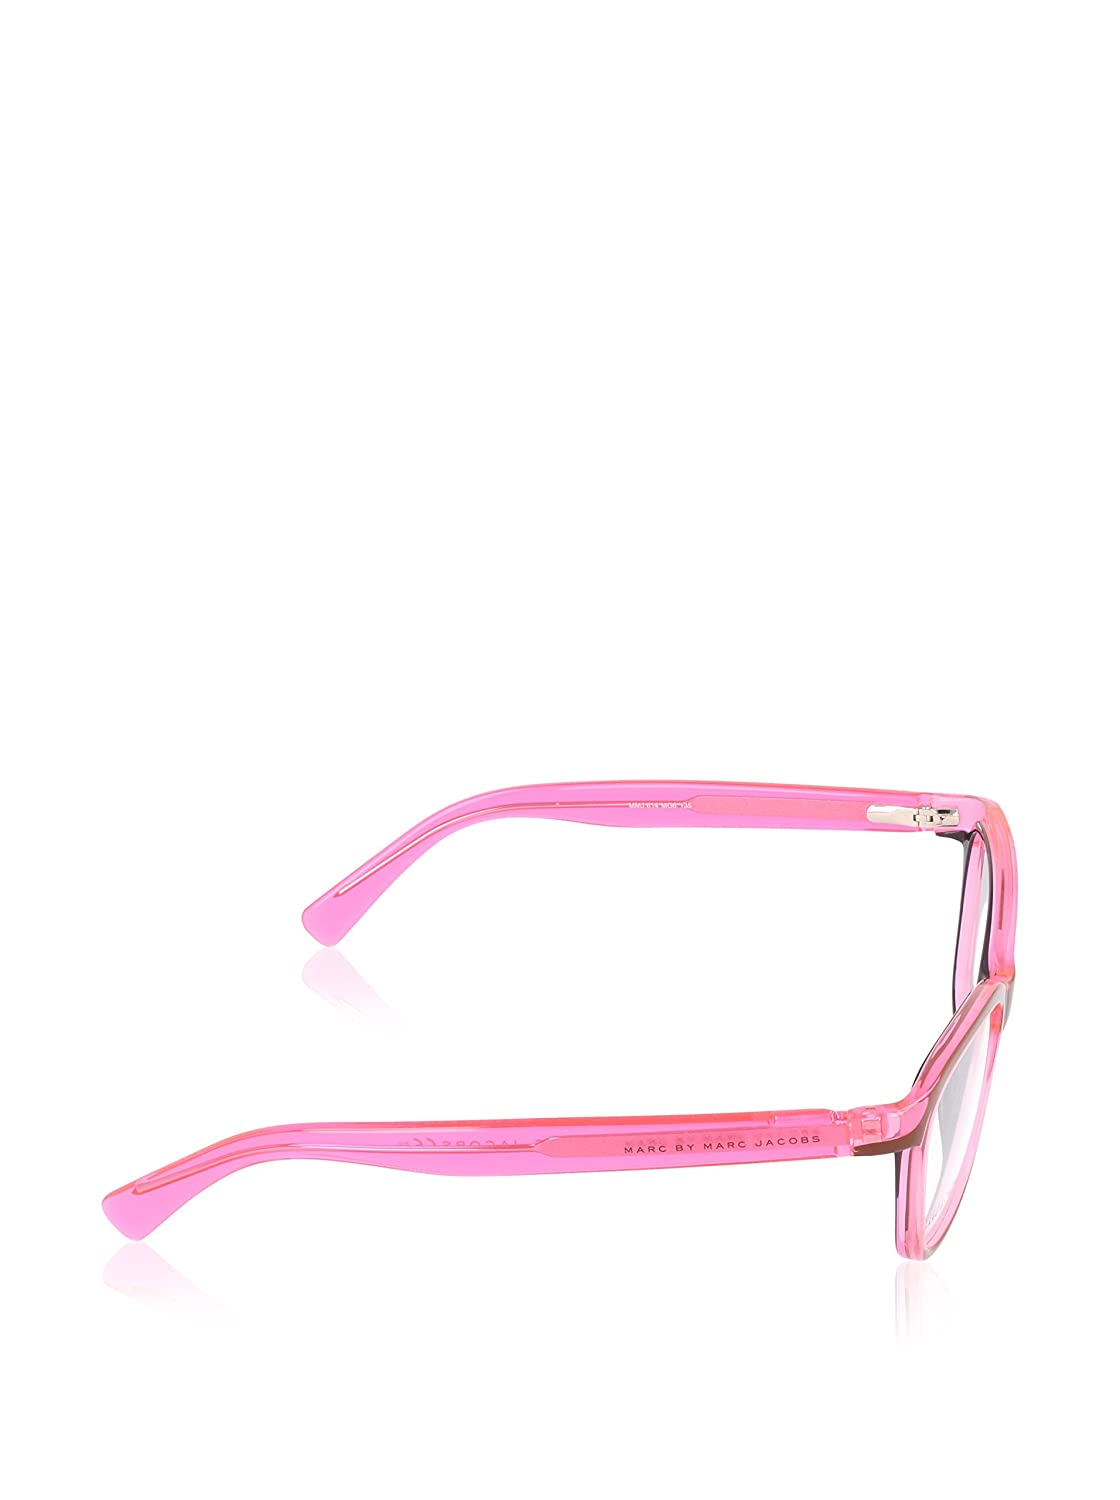 e9e468c0310 Amazon.com  Marc Jacobs eyeglasses MMJ 614 MG6 Acetate Neon Pink fuschia  fuchsia - Bordeaux  Clothing